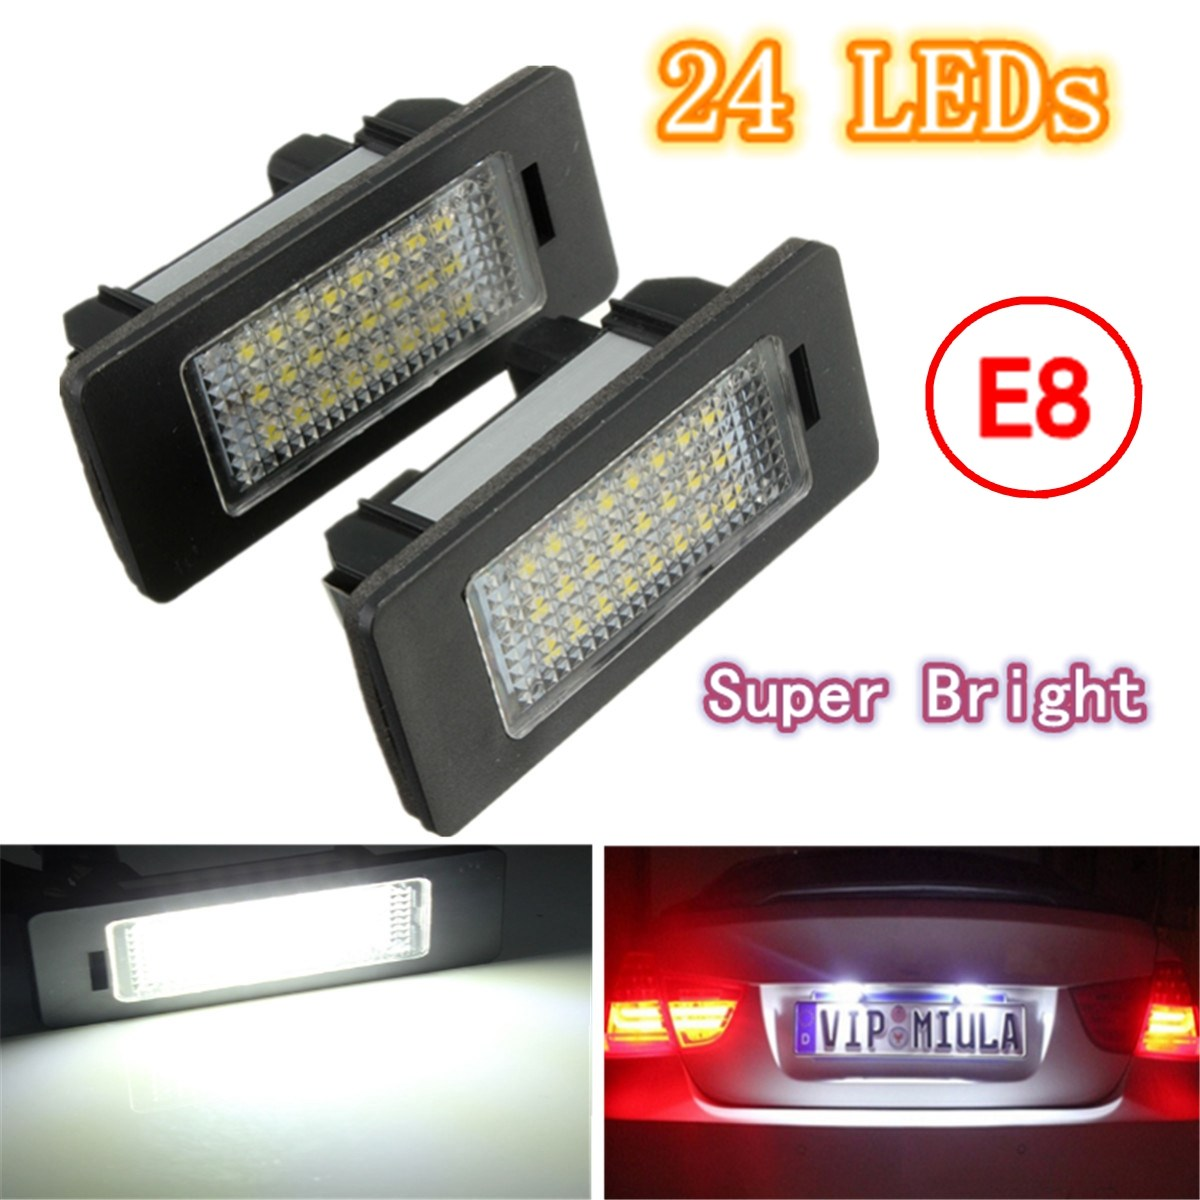 2X E-marked OBC Error Free 24 LED White License Number Plate Light Lamp For BMW E81 E82 E90 E91 E92 E93 E60 E61 E39 X1/E84 2pcs set led license plate light error free for bmw e39 e60 e61 e70 e82 e90 e92 24smd xenon white free shipping